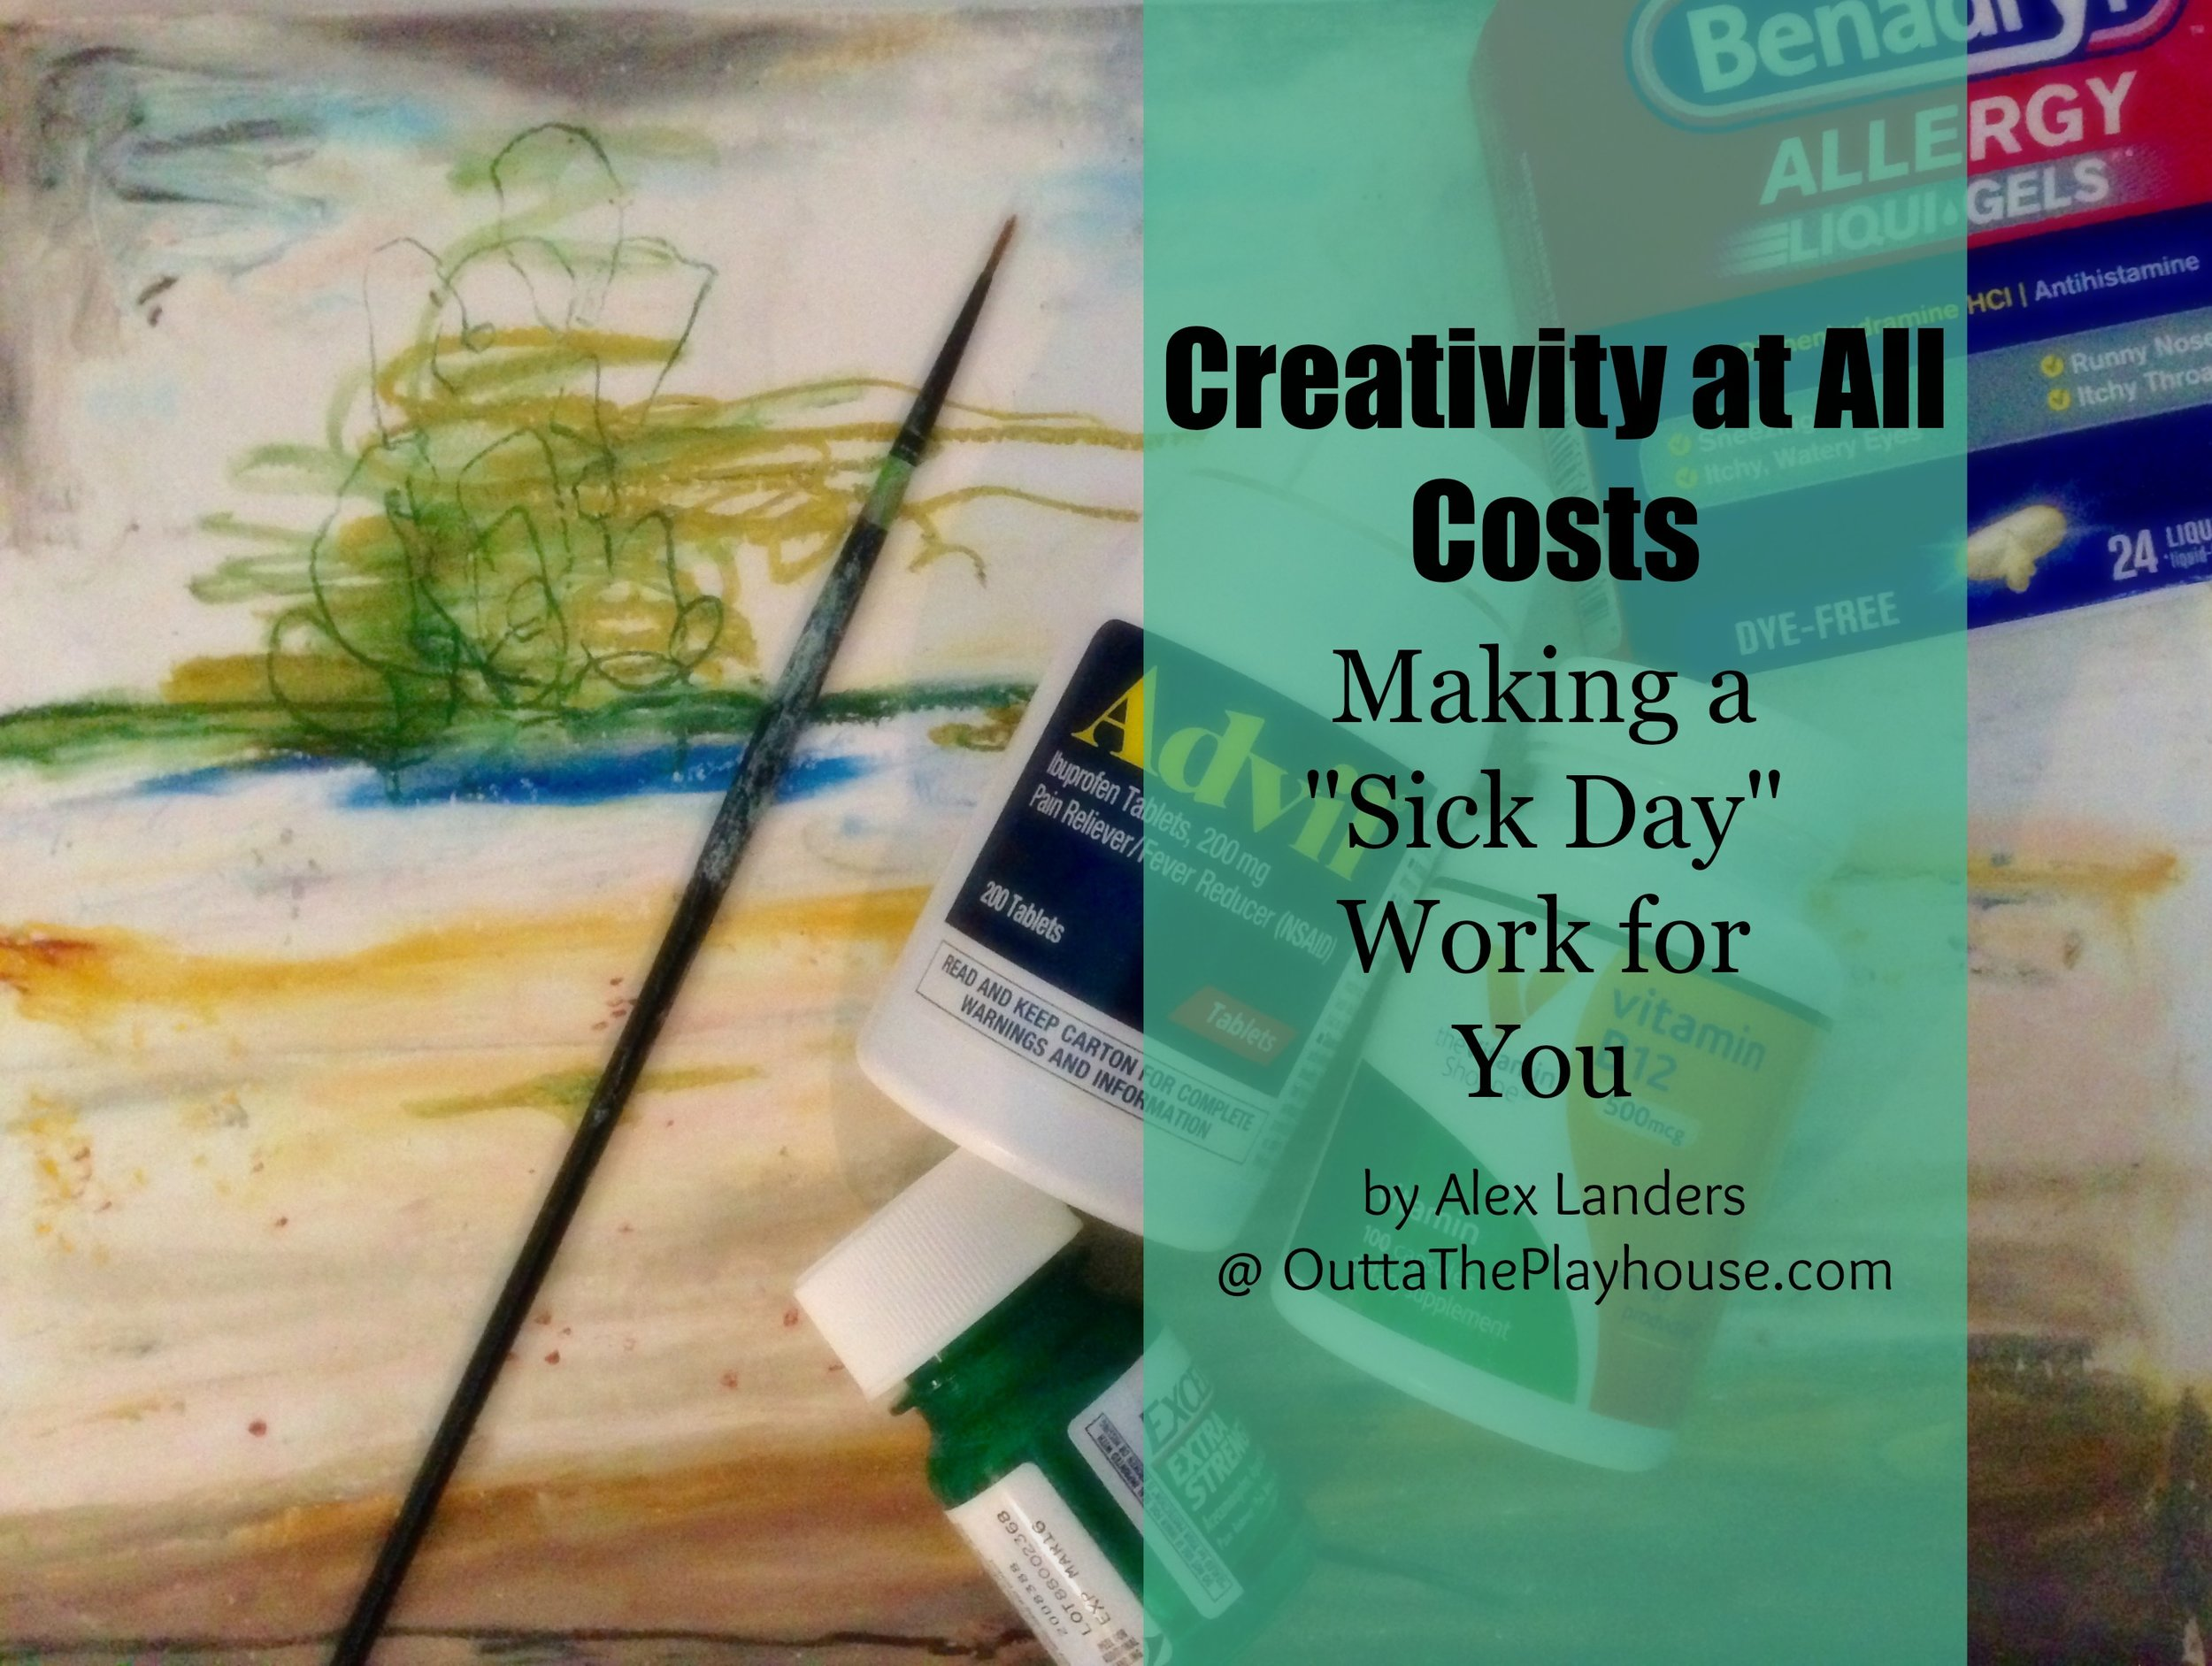 Creativity at All Costs: The Art of Working With Illness | originally published on OuttaThePlayhouse.com